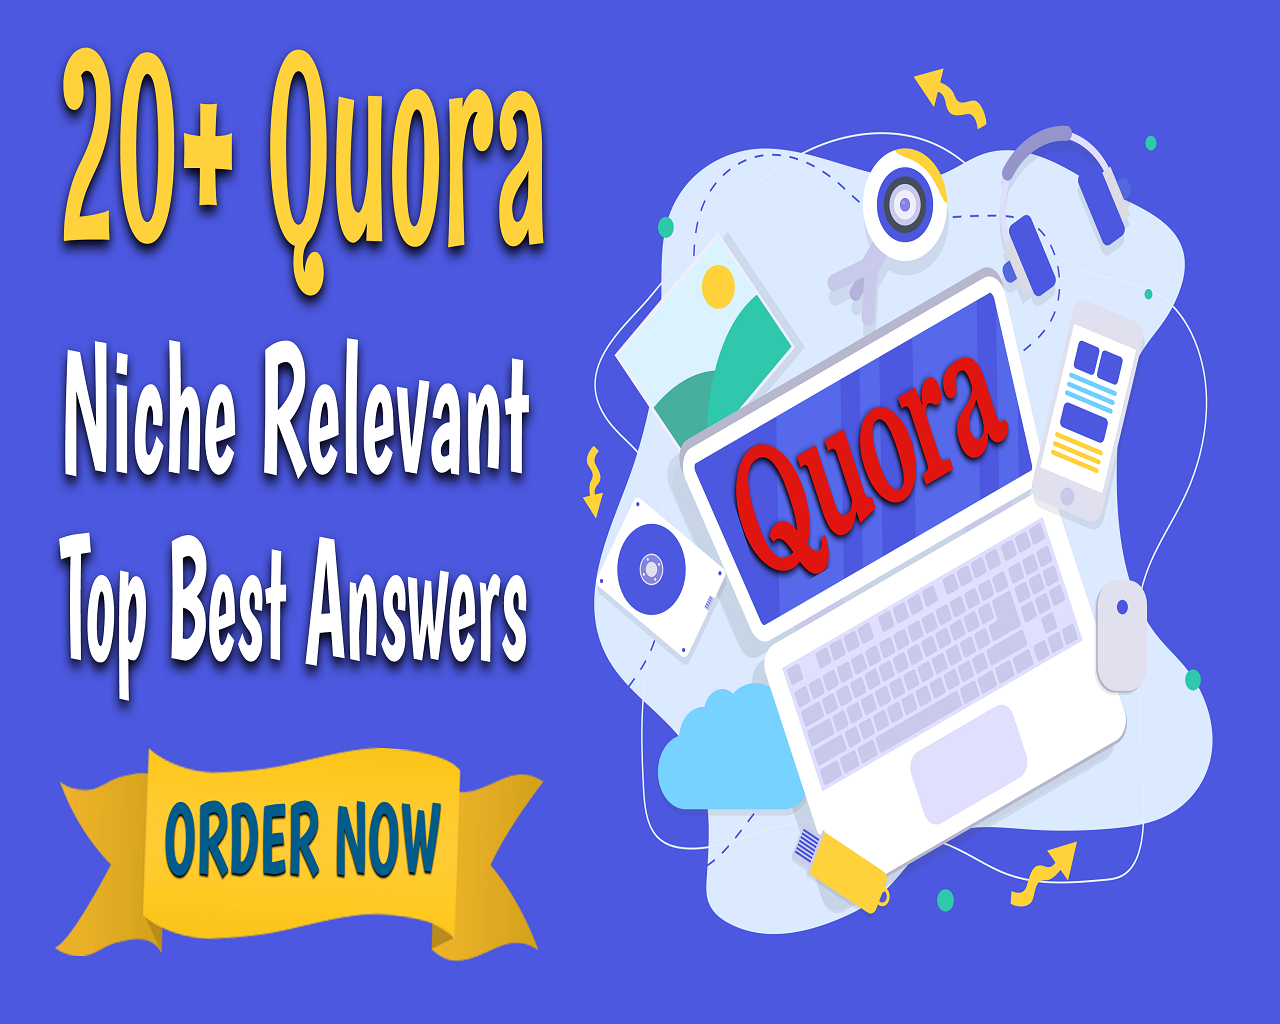 Manually Do 20 Quora Niche Relevant Keyword Related Top Best Answers Posting SEO Backlinks